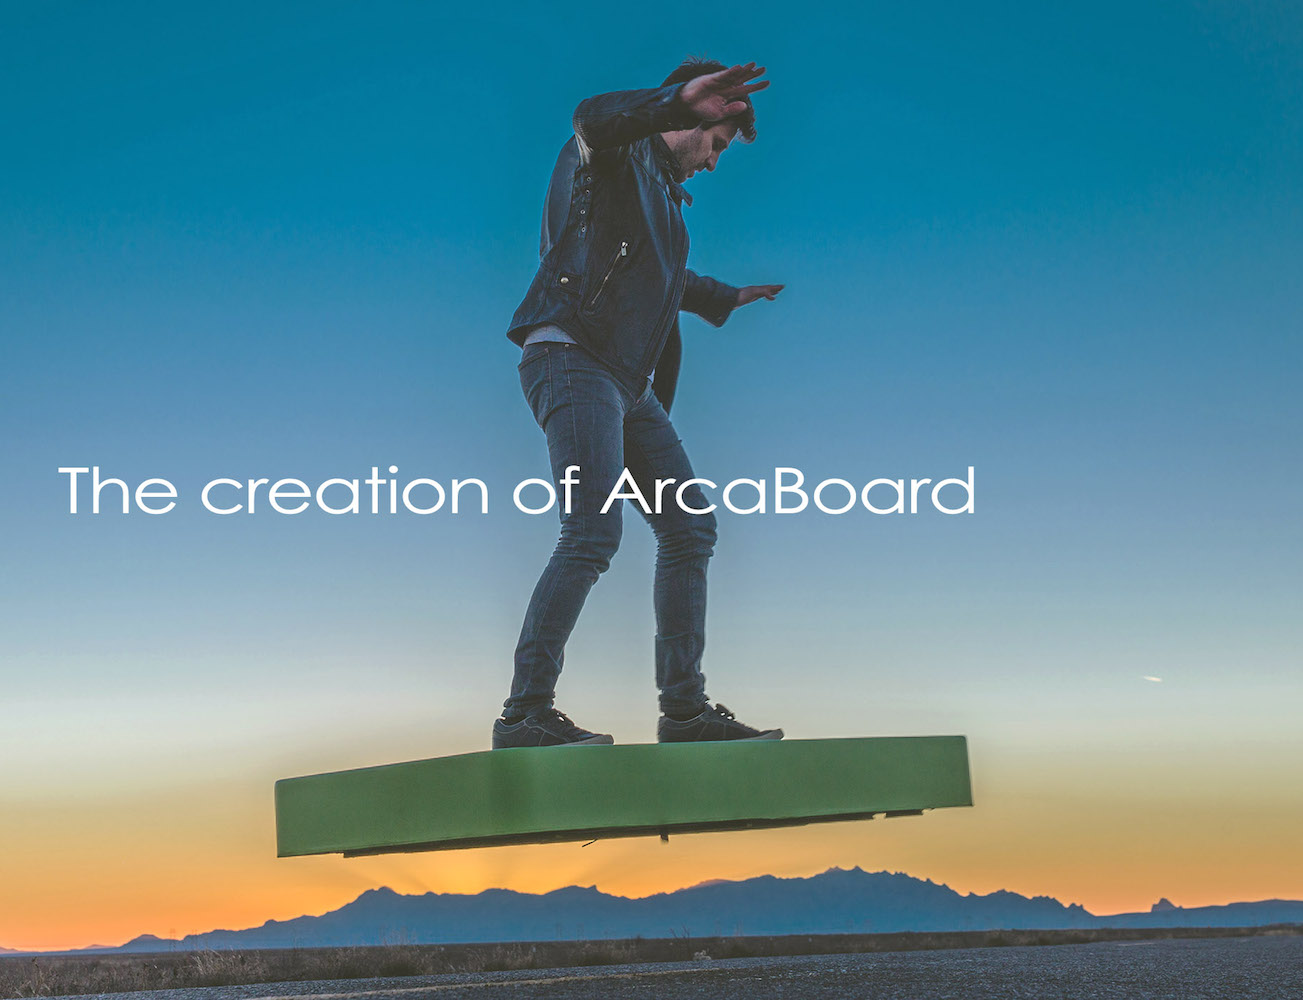 ArcaBoard – Revolutionary Vehicle That Lets You Fly in Air